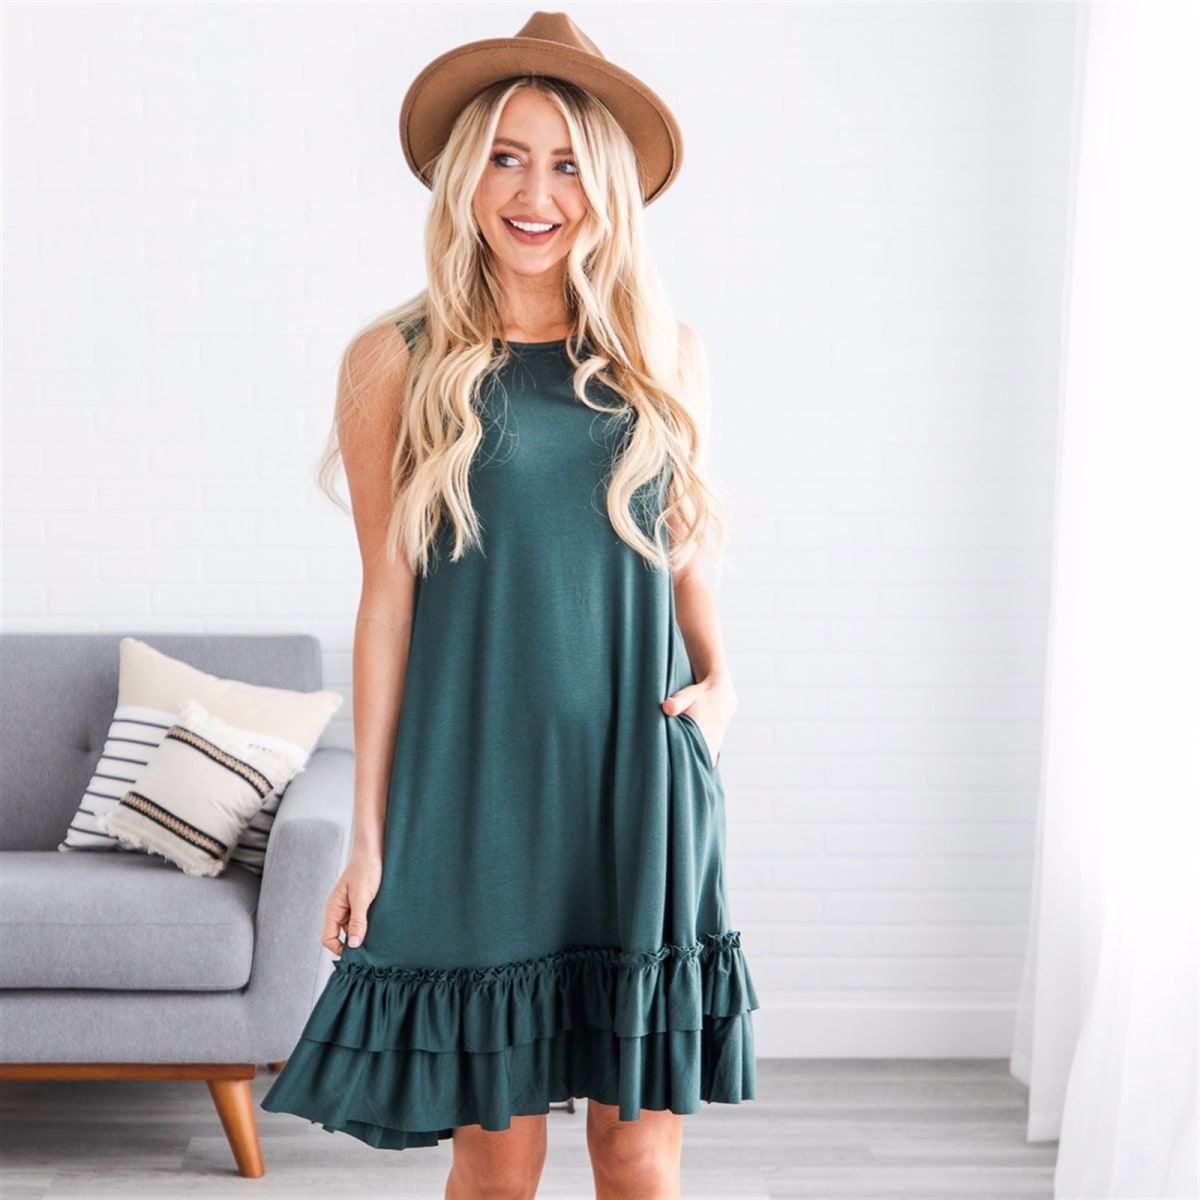 Summer dresses: a woman wearing a brown hat and a jade green sleeveless dress